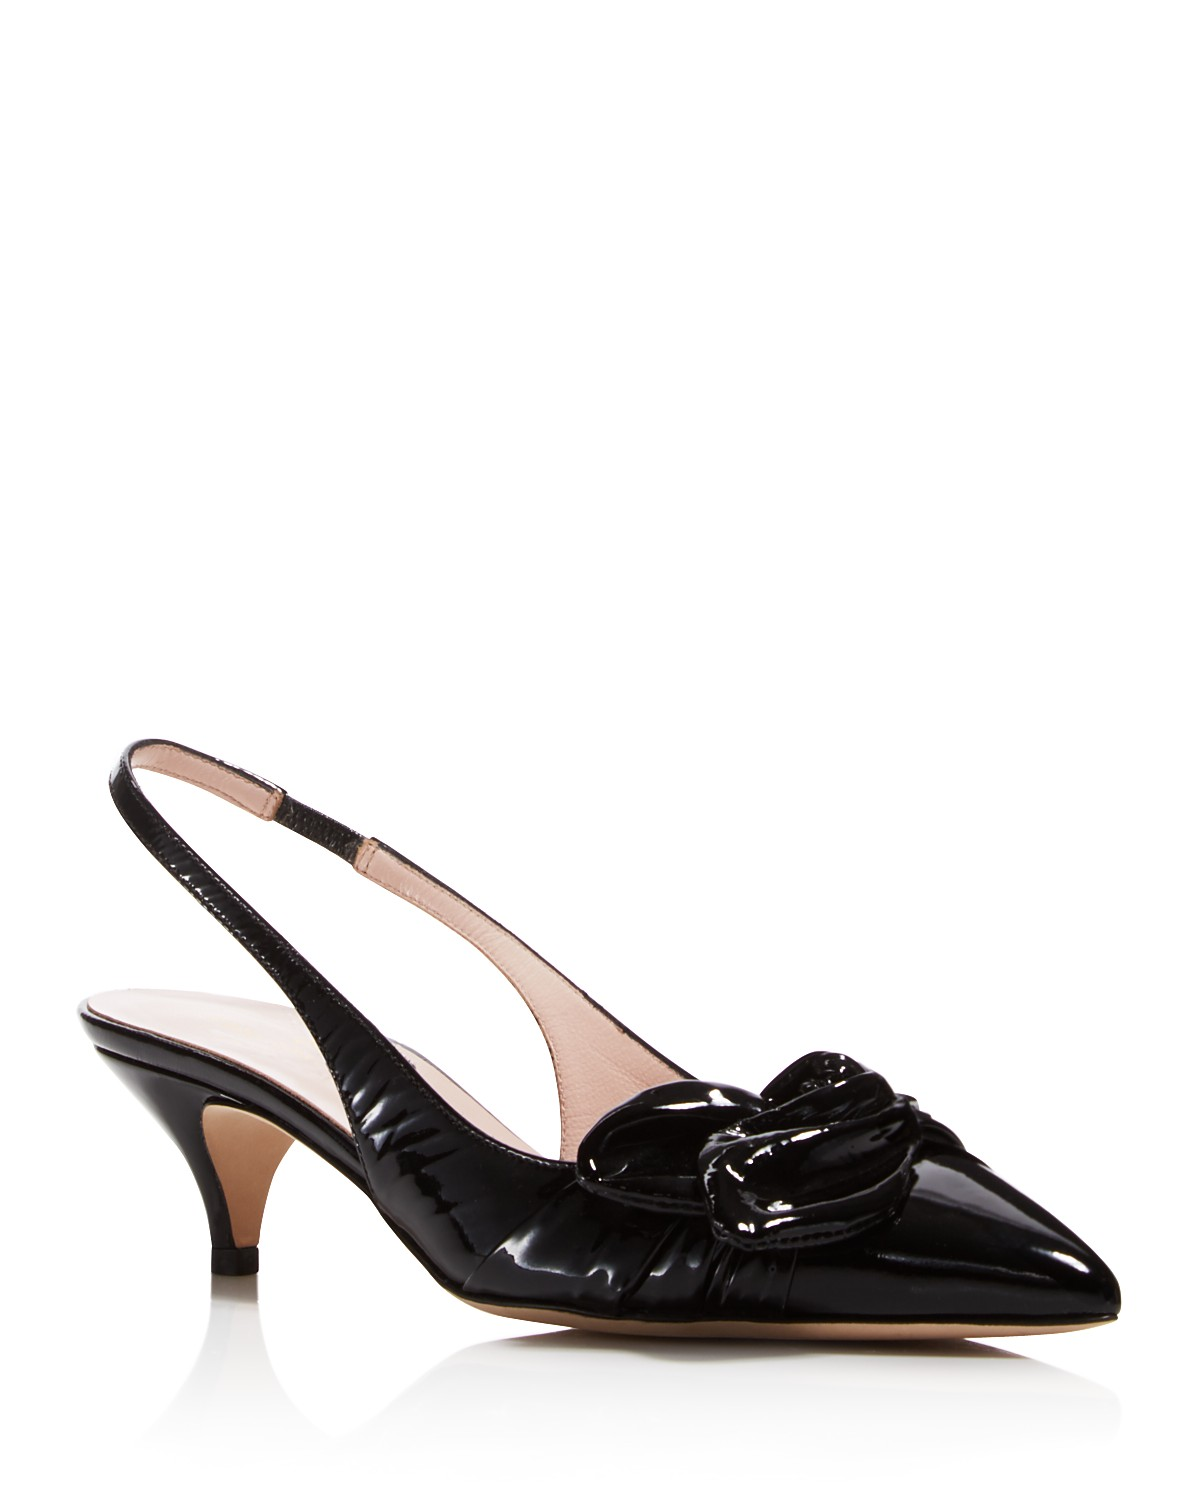 Kate Spade New York Patent Leather Bow-Accented Pumps limited edition sale newest marketable f531JUf